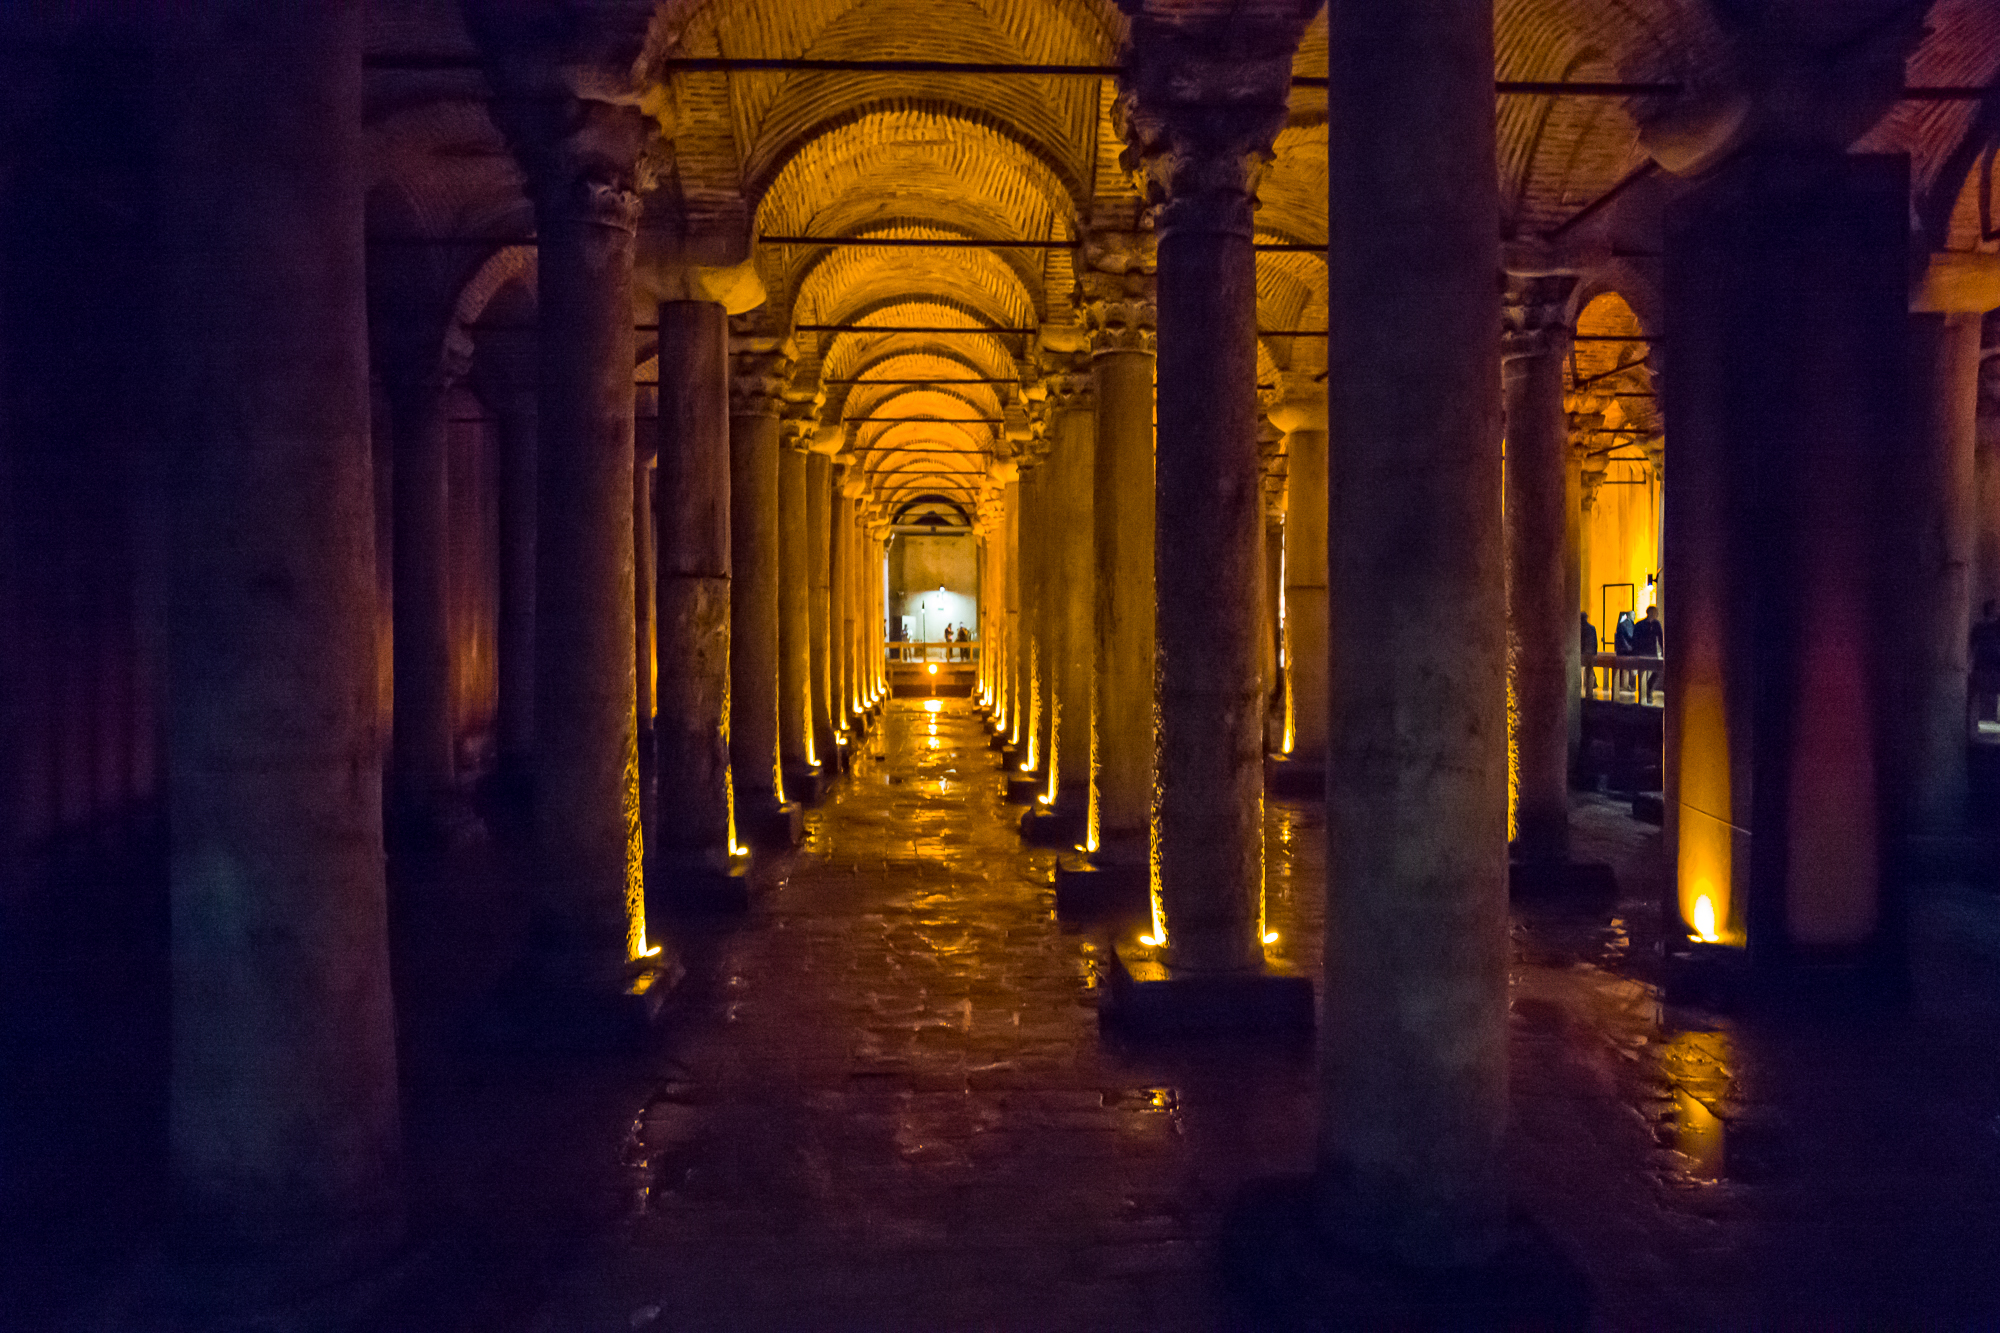 Bascilica Cistern built by Justinian in 530 AD